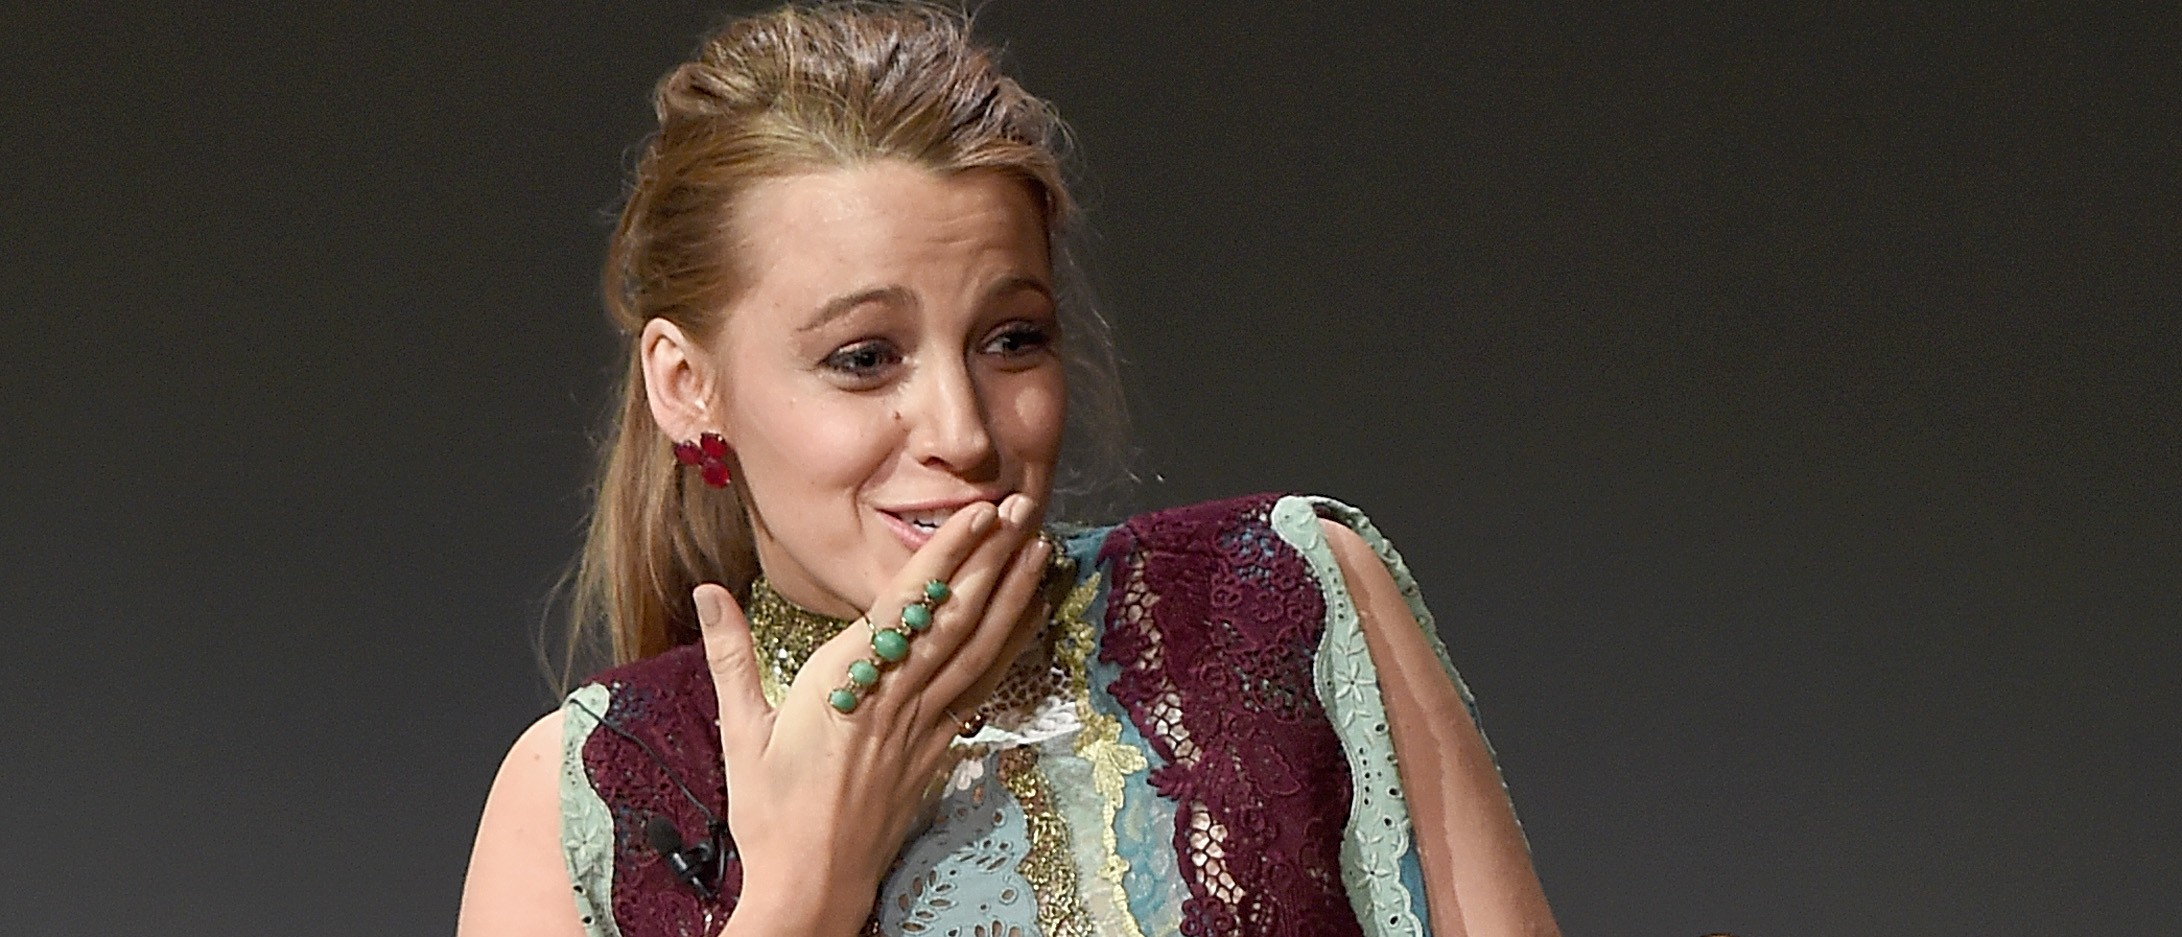 Blake Lively is pregnant with second child